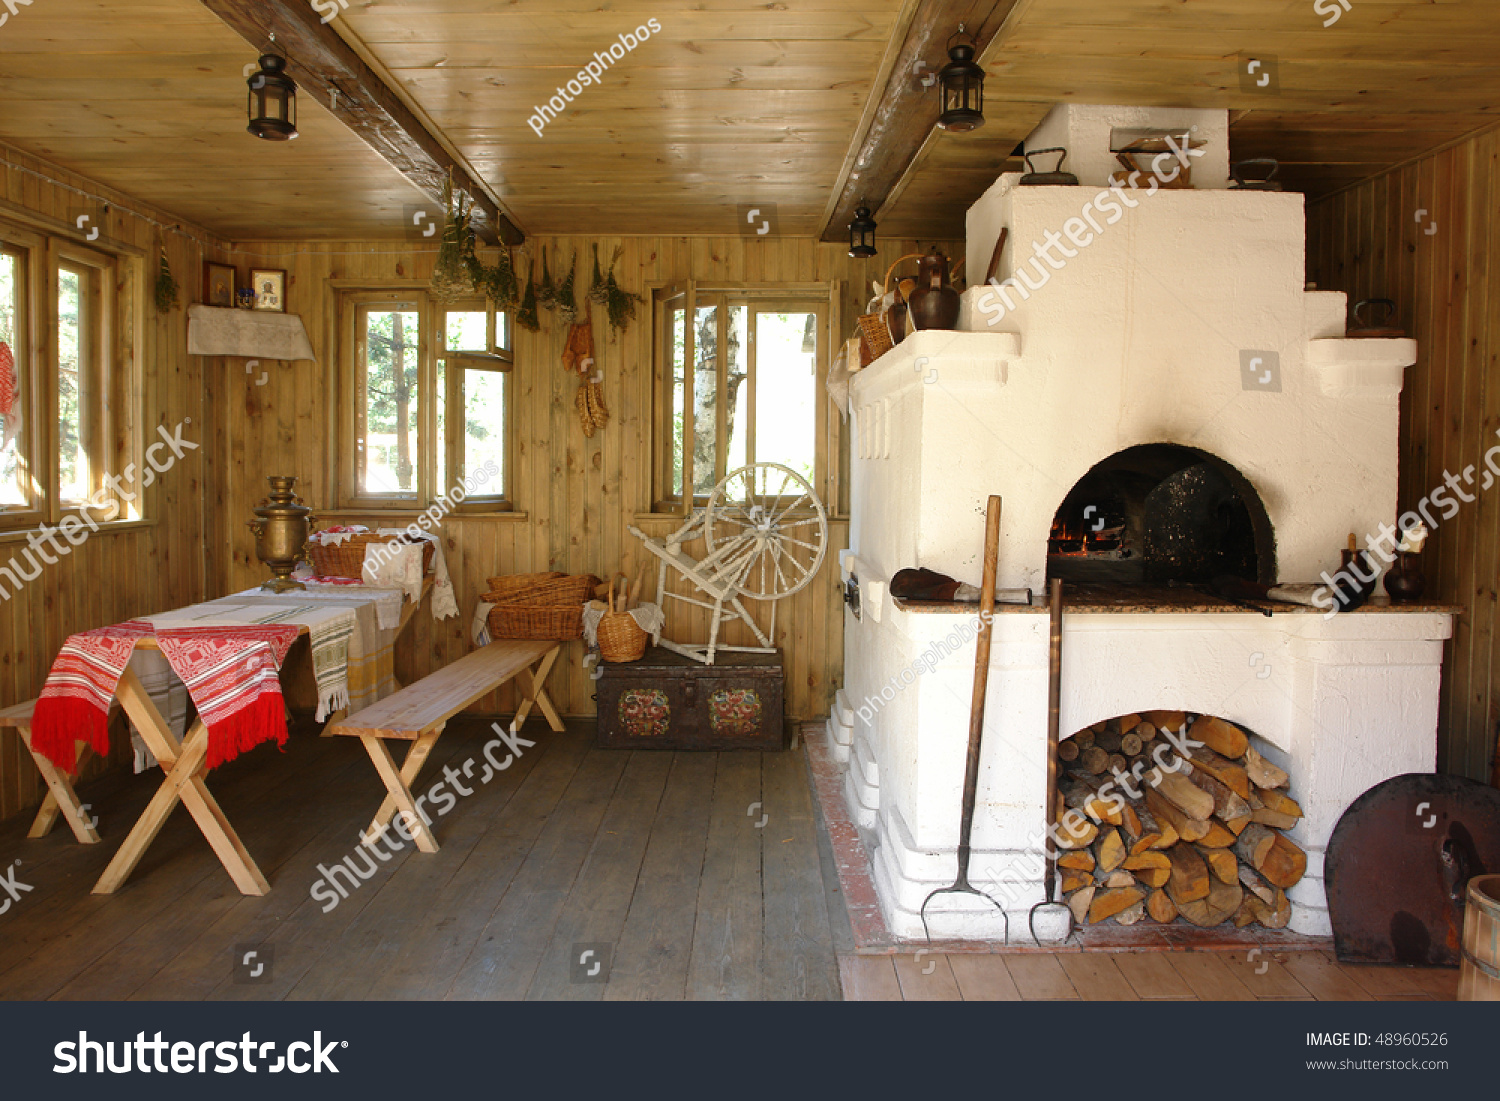 Interior Of Russian House With Traditional Oven Stock